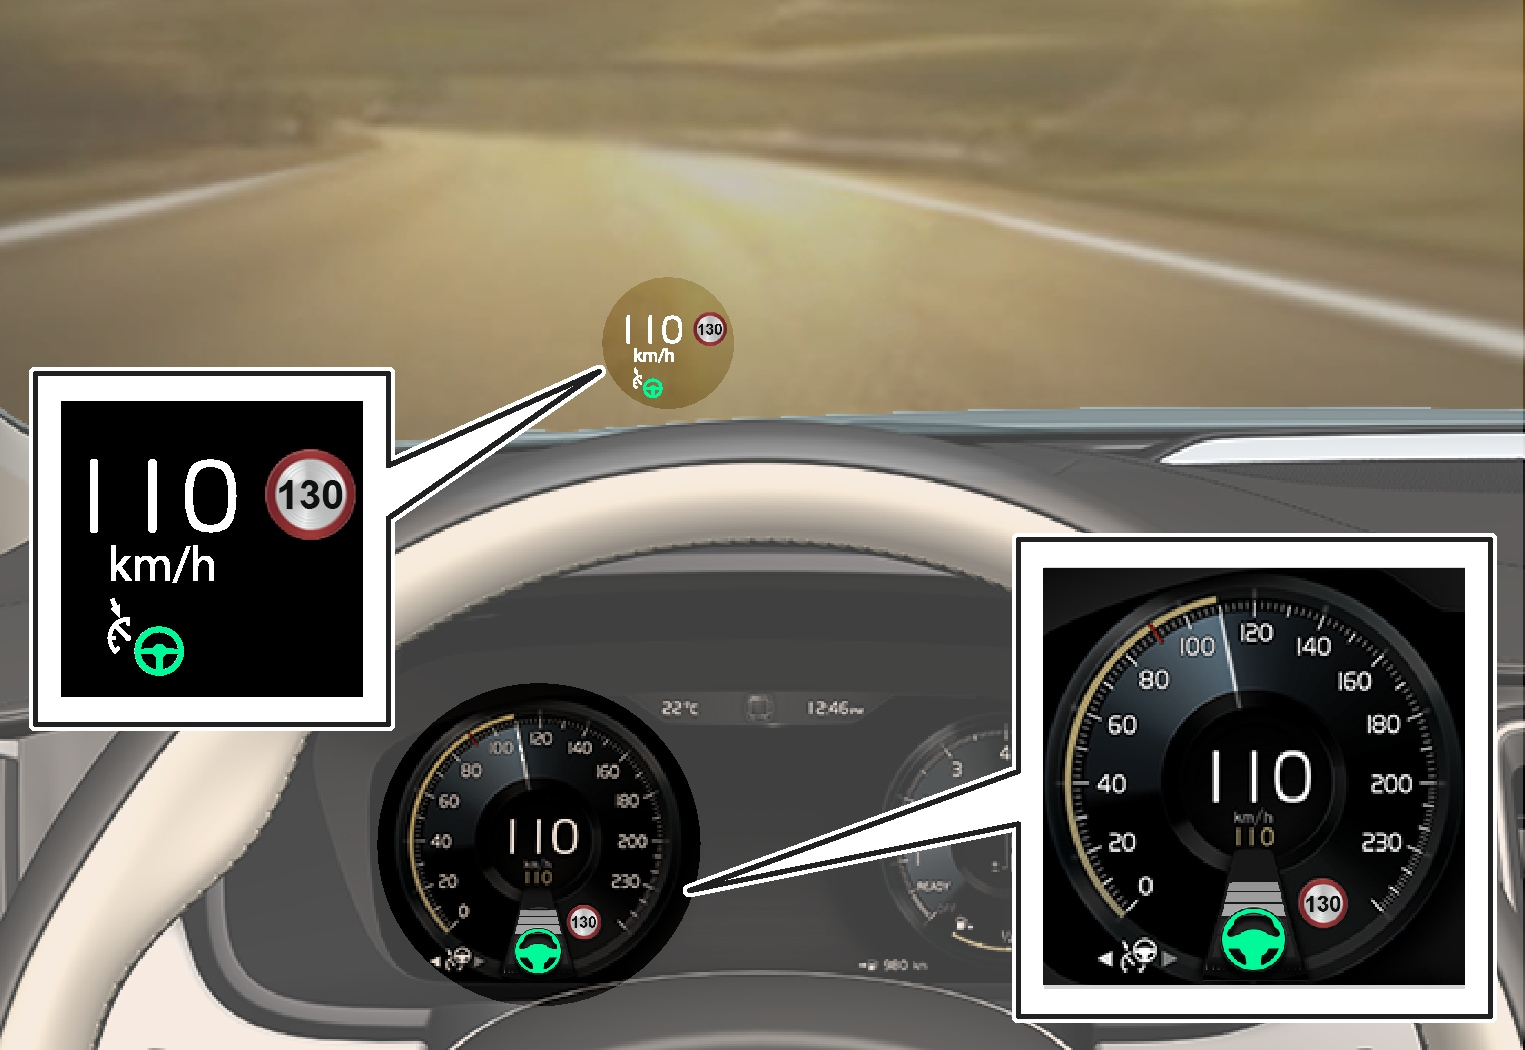 P5-V90/S90-1646-Pilot Assist, set to maintain 110 km/h,  no vehicle ahead to follow and steering assistance